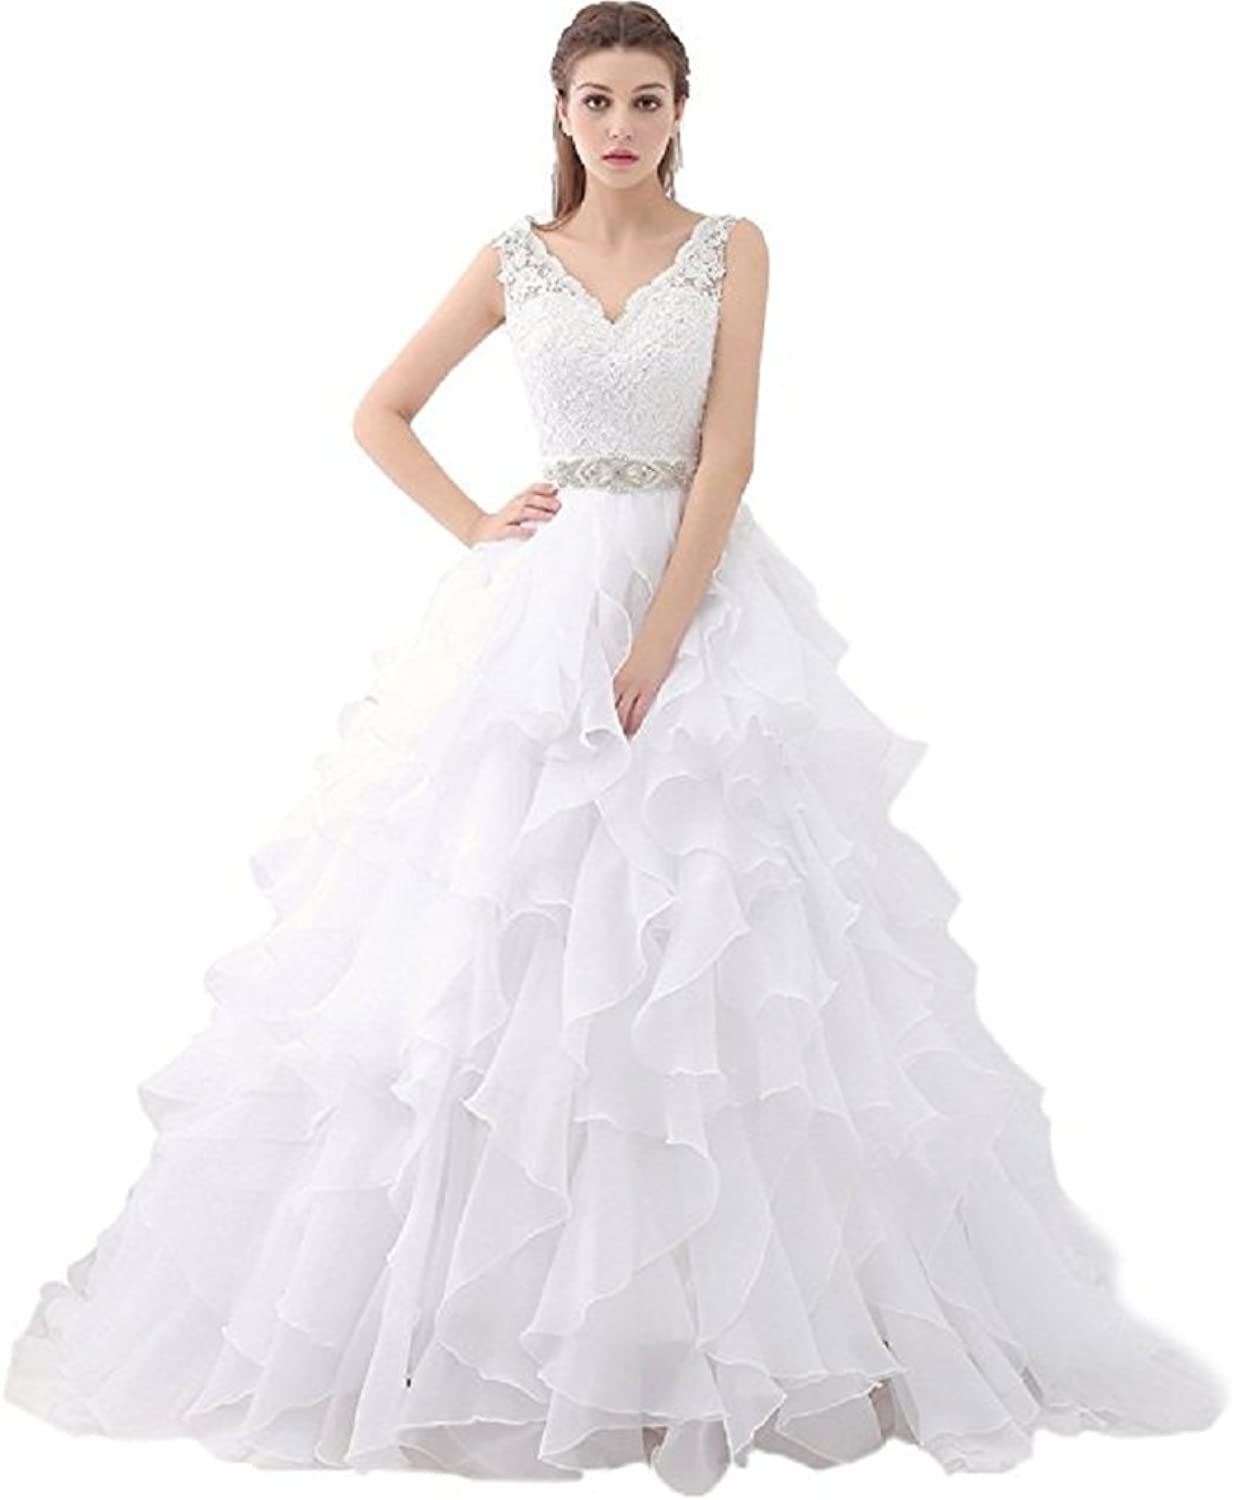 Sweetheart V Neck Ruffles Organza Wedding Dresses for Bride Gown